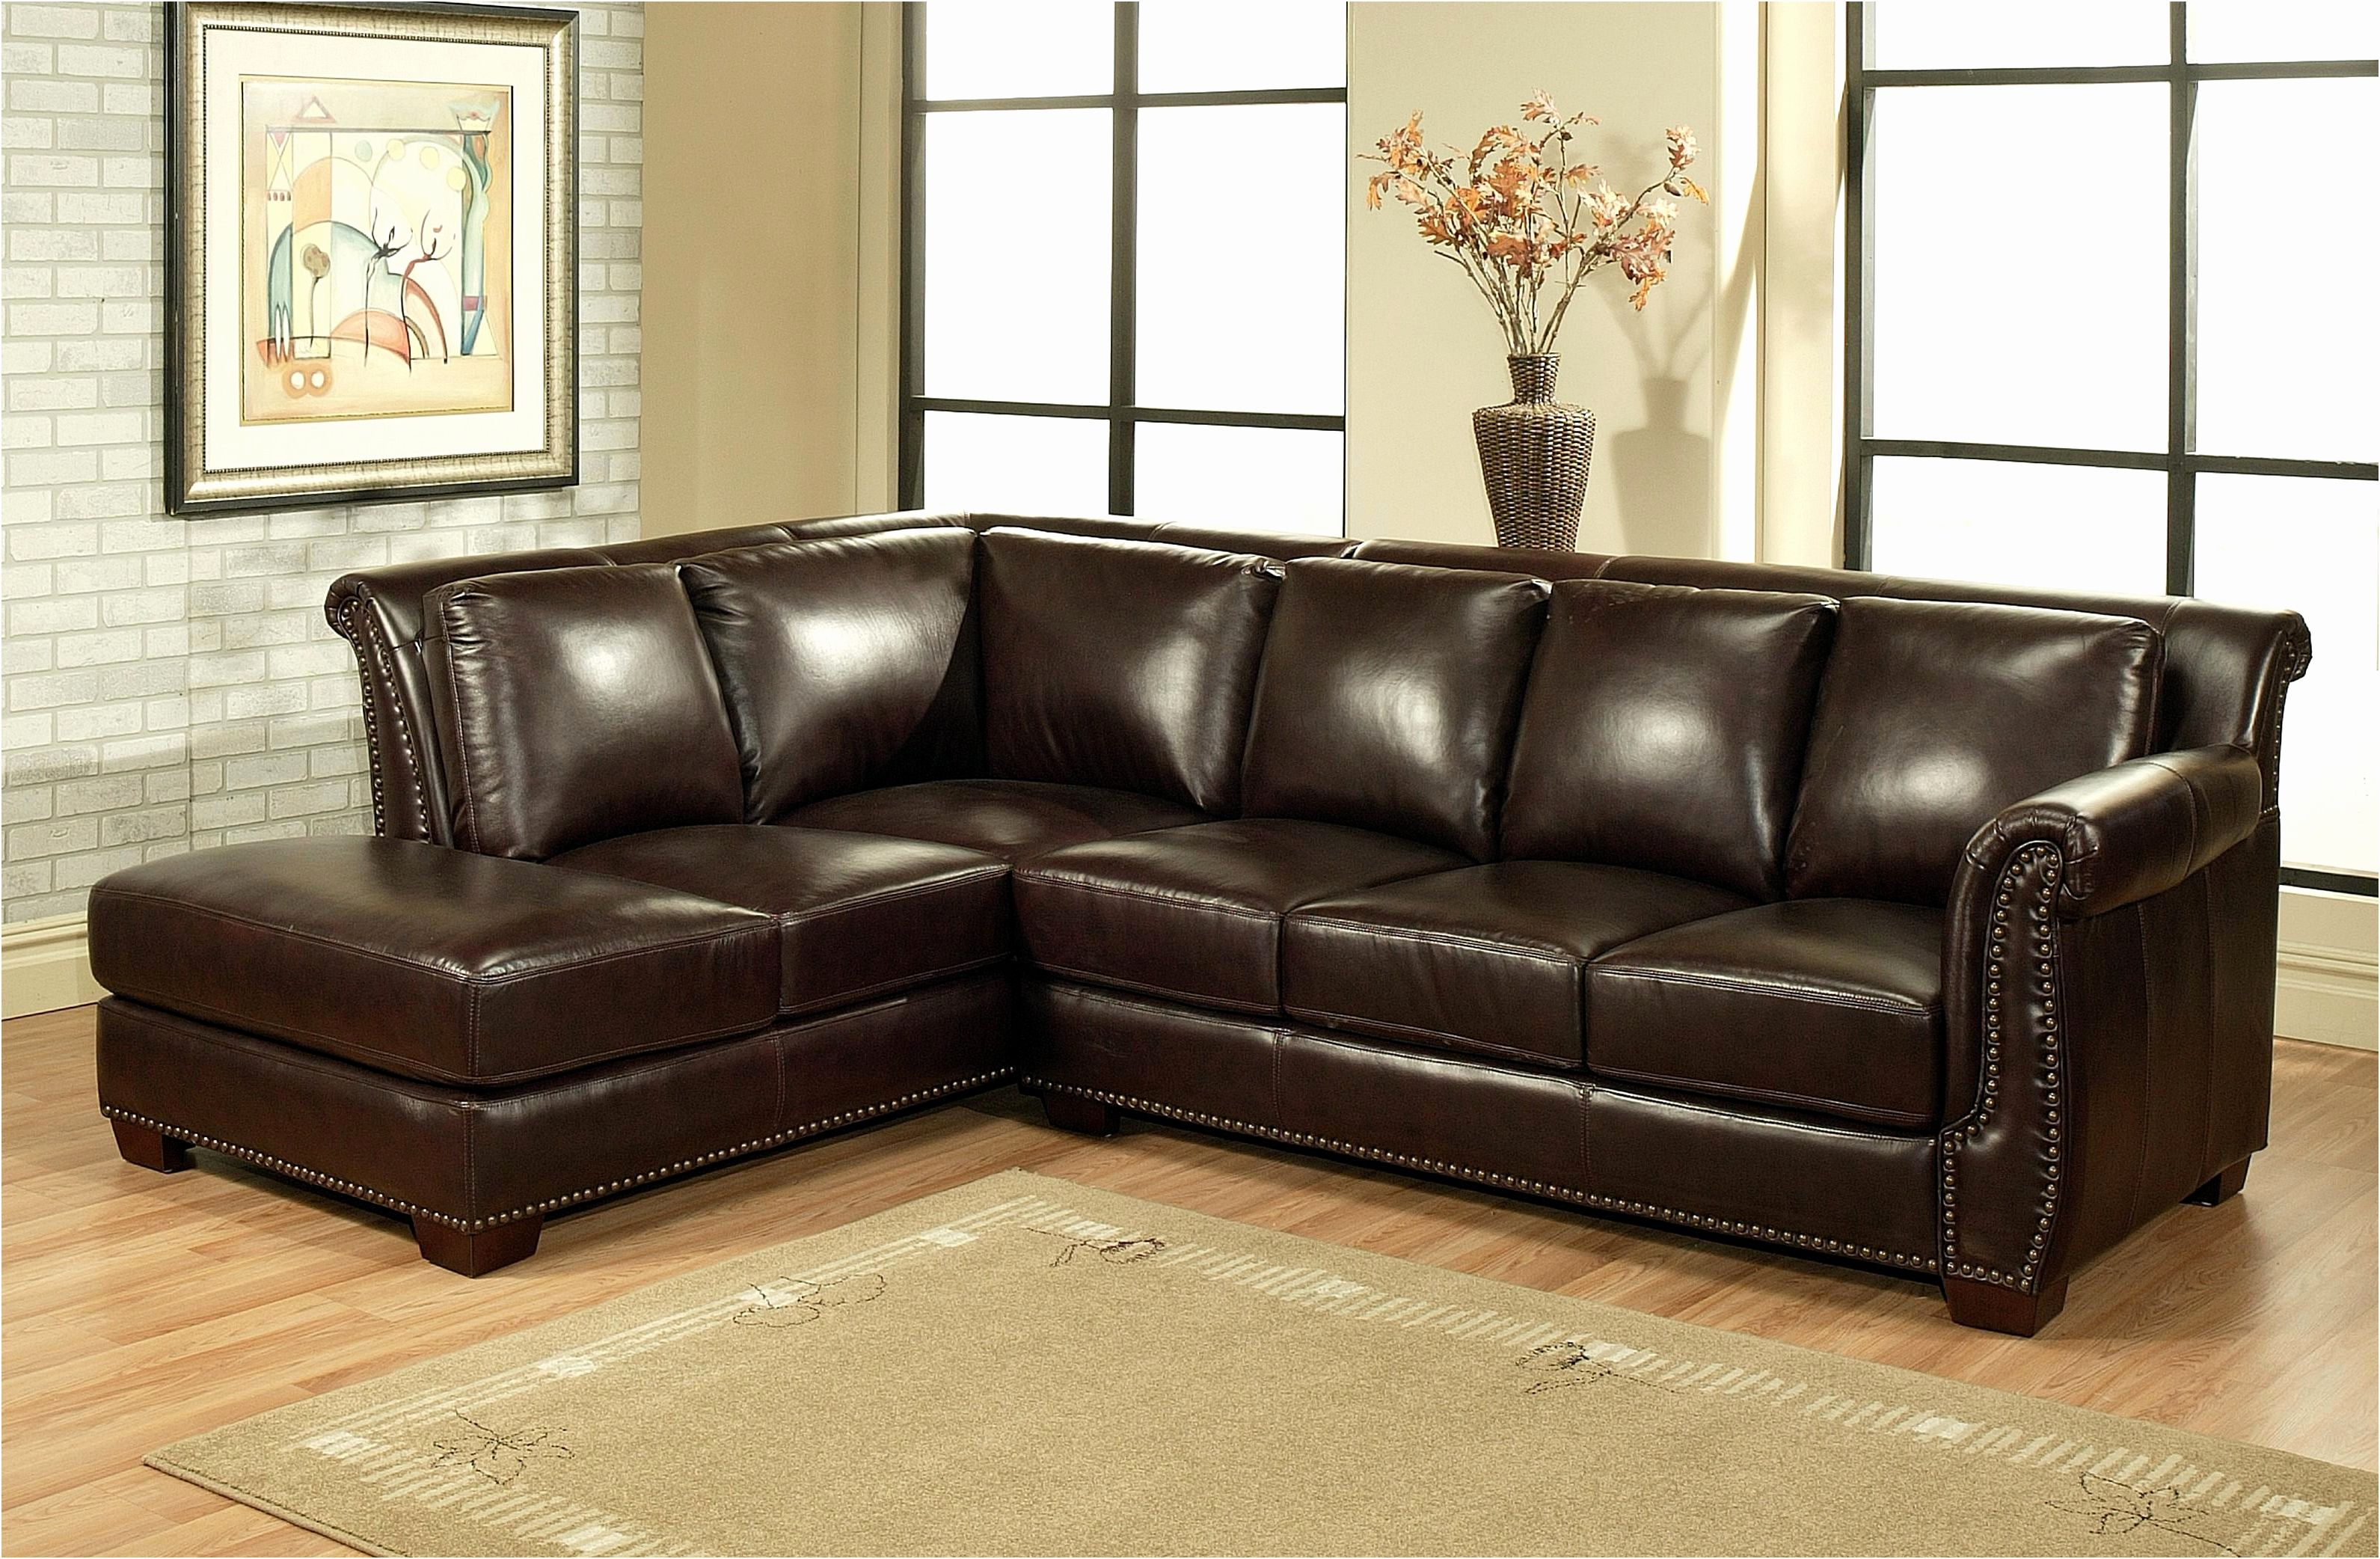 Best Of Jcpenney Sectional Sofa Pics Jcpenney Sectional Sofa Lovely Brown Leather Sofa Sectional Lova Leather Sofa Furniture Best Leather Sofa Buy Leather Sofa